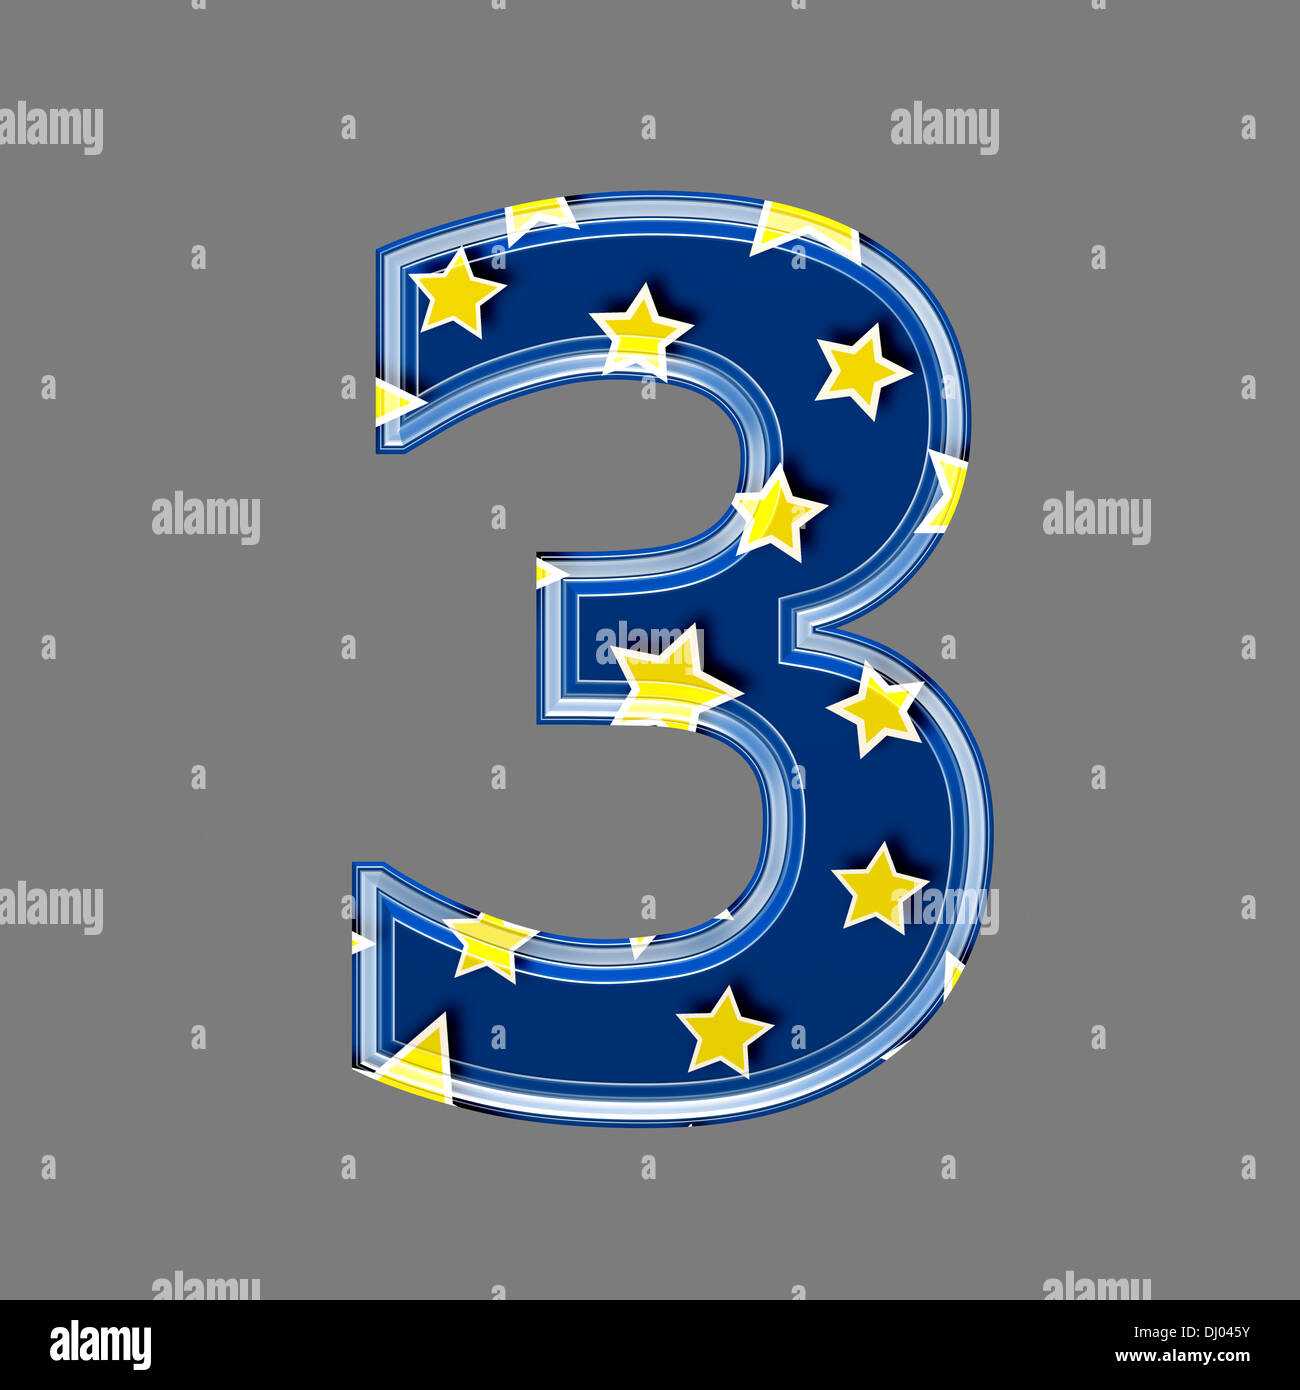 Three dimensional digit with star pattern - 3 - Stock Image